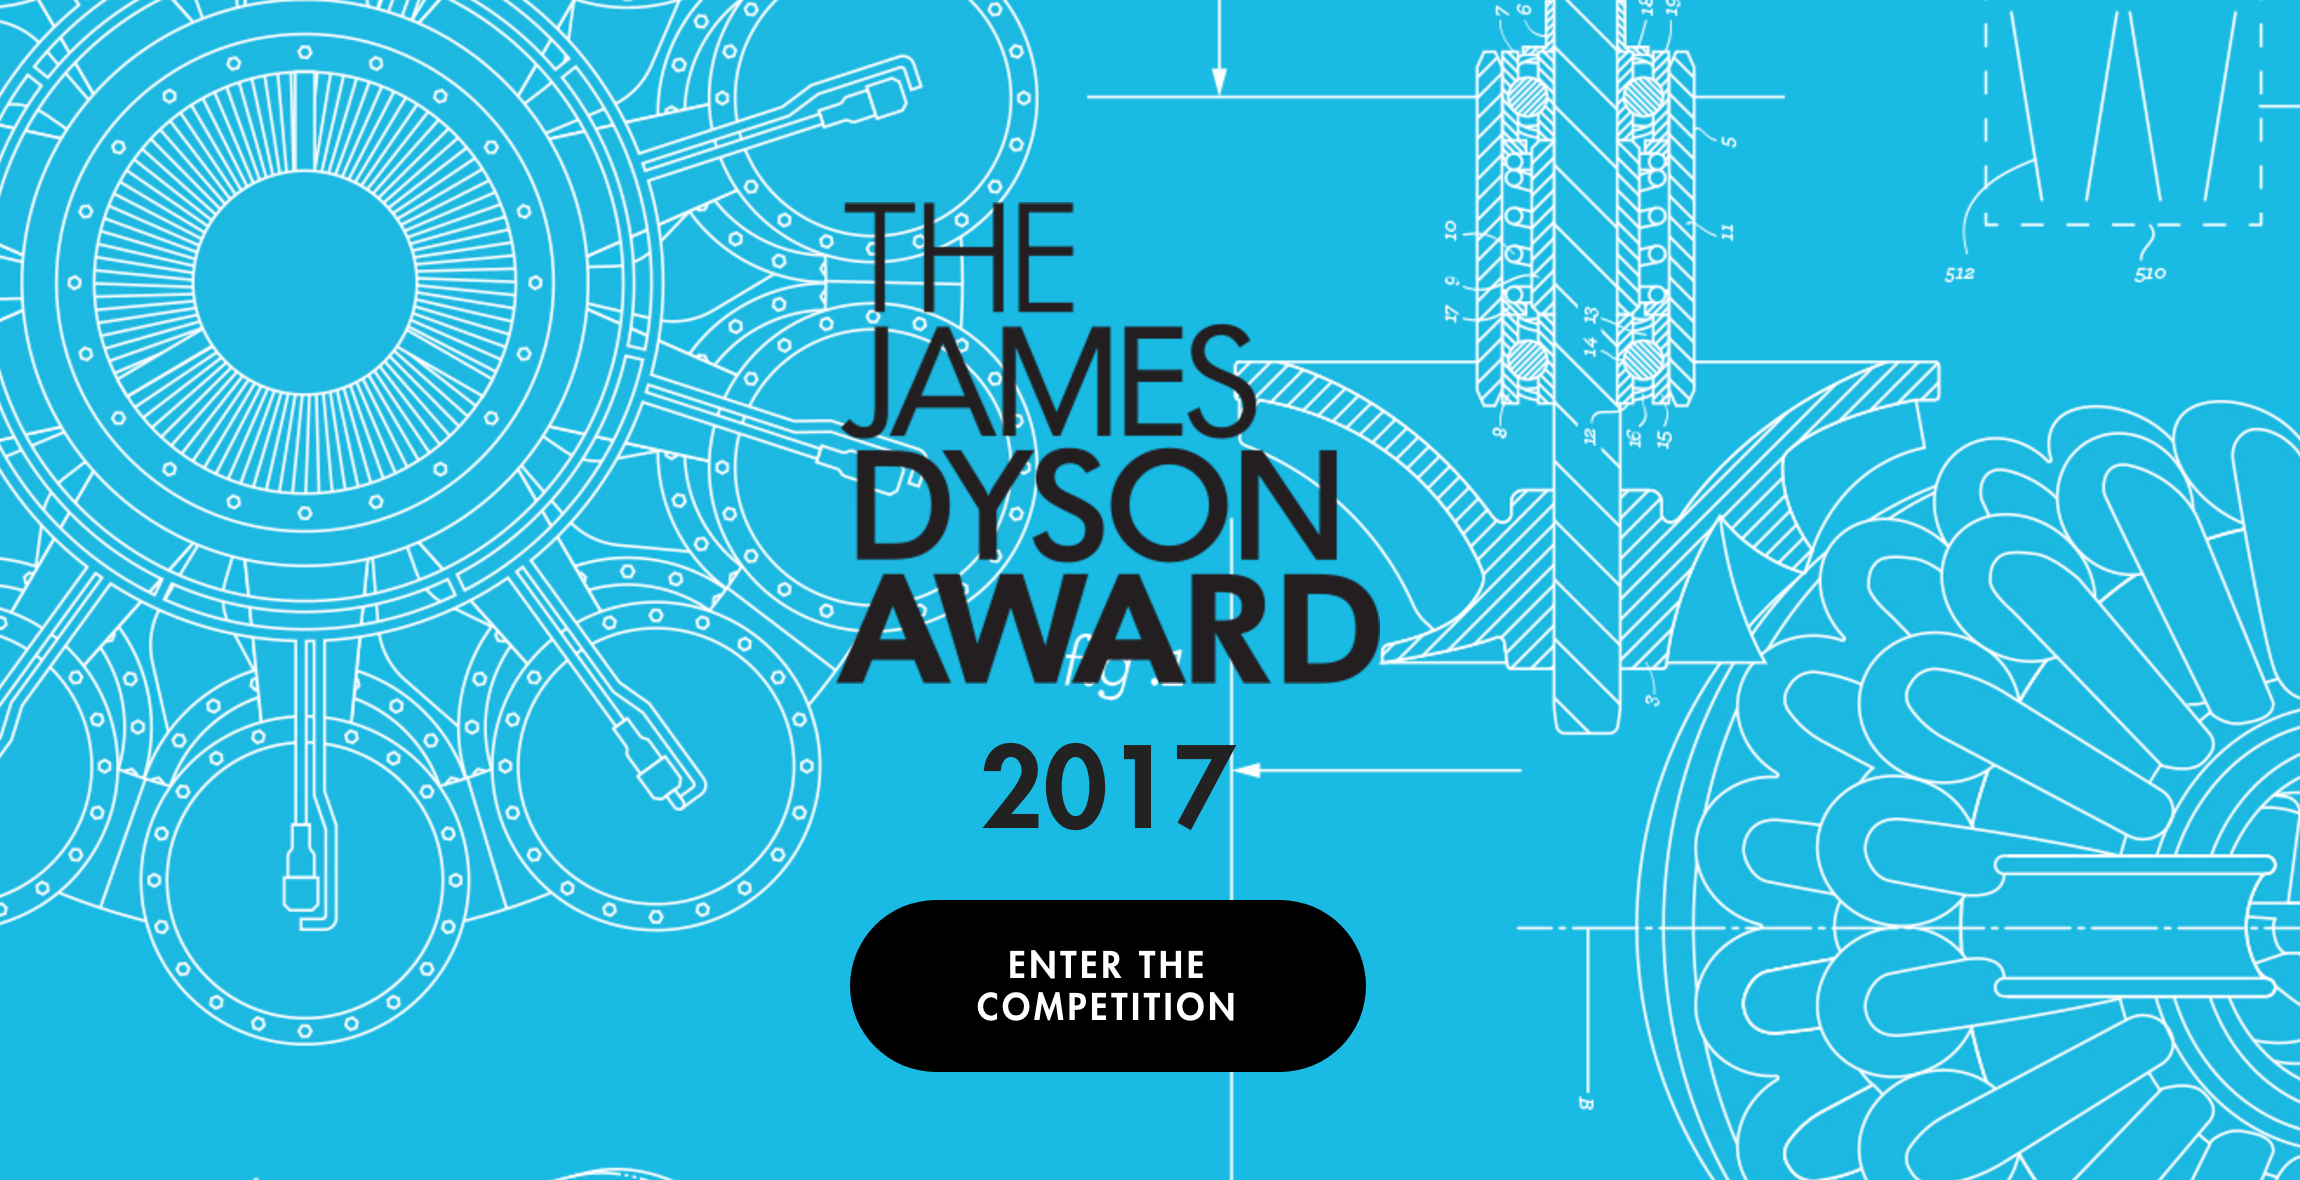 James Dyson Award 2017 (Win up to $40,000 for your Idea)